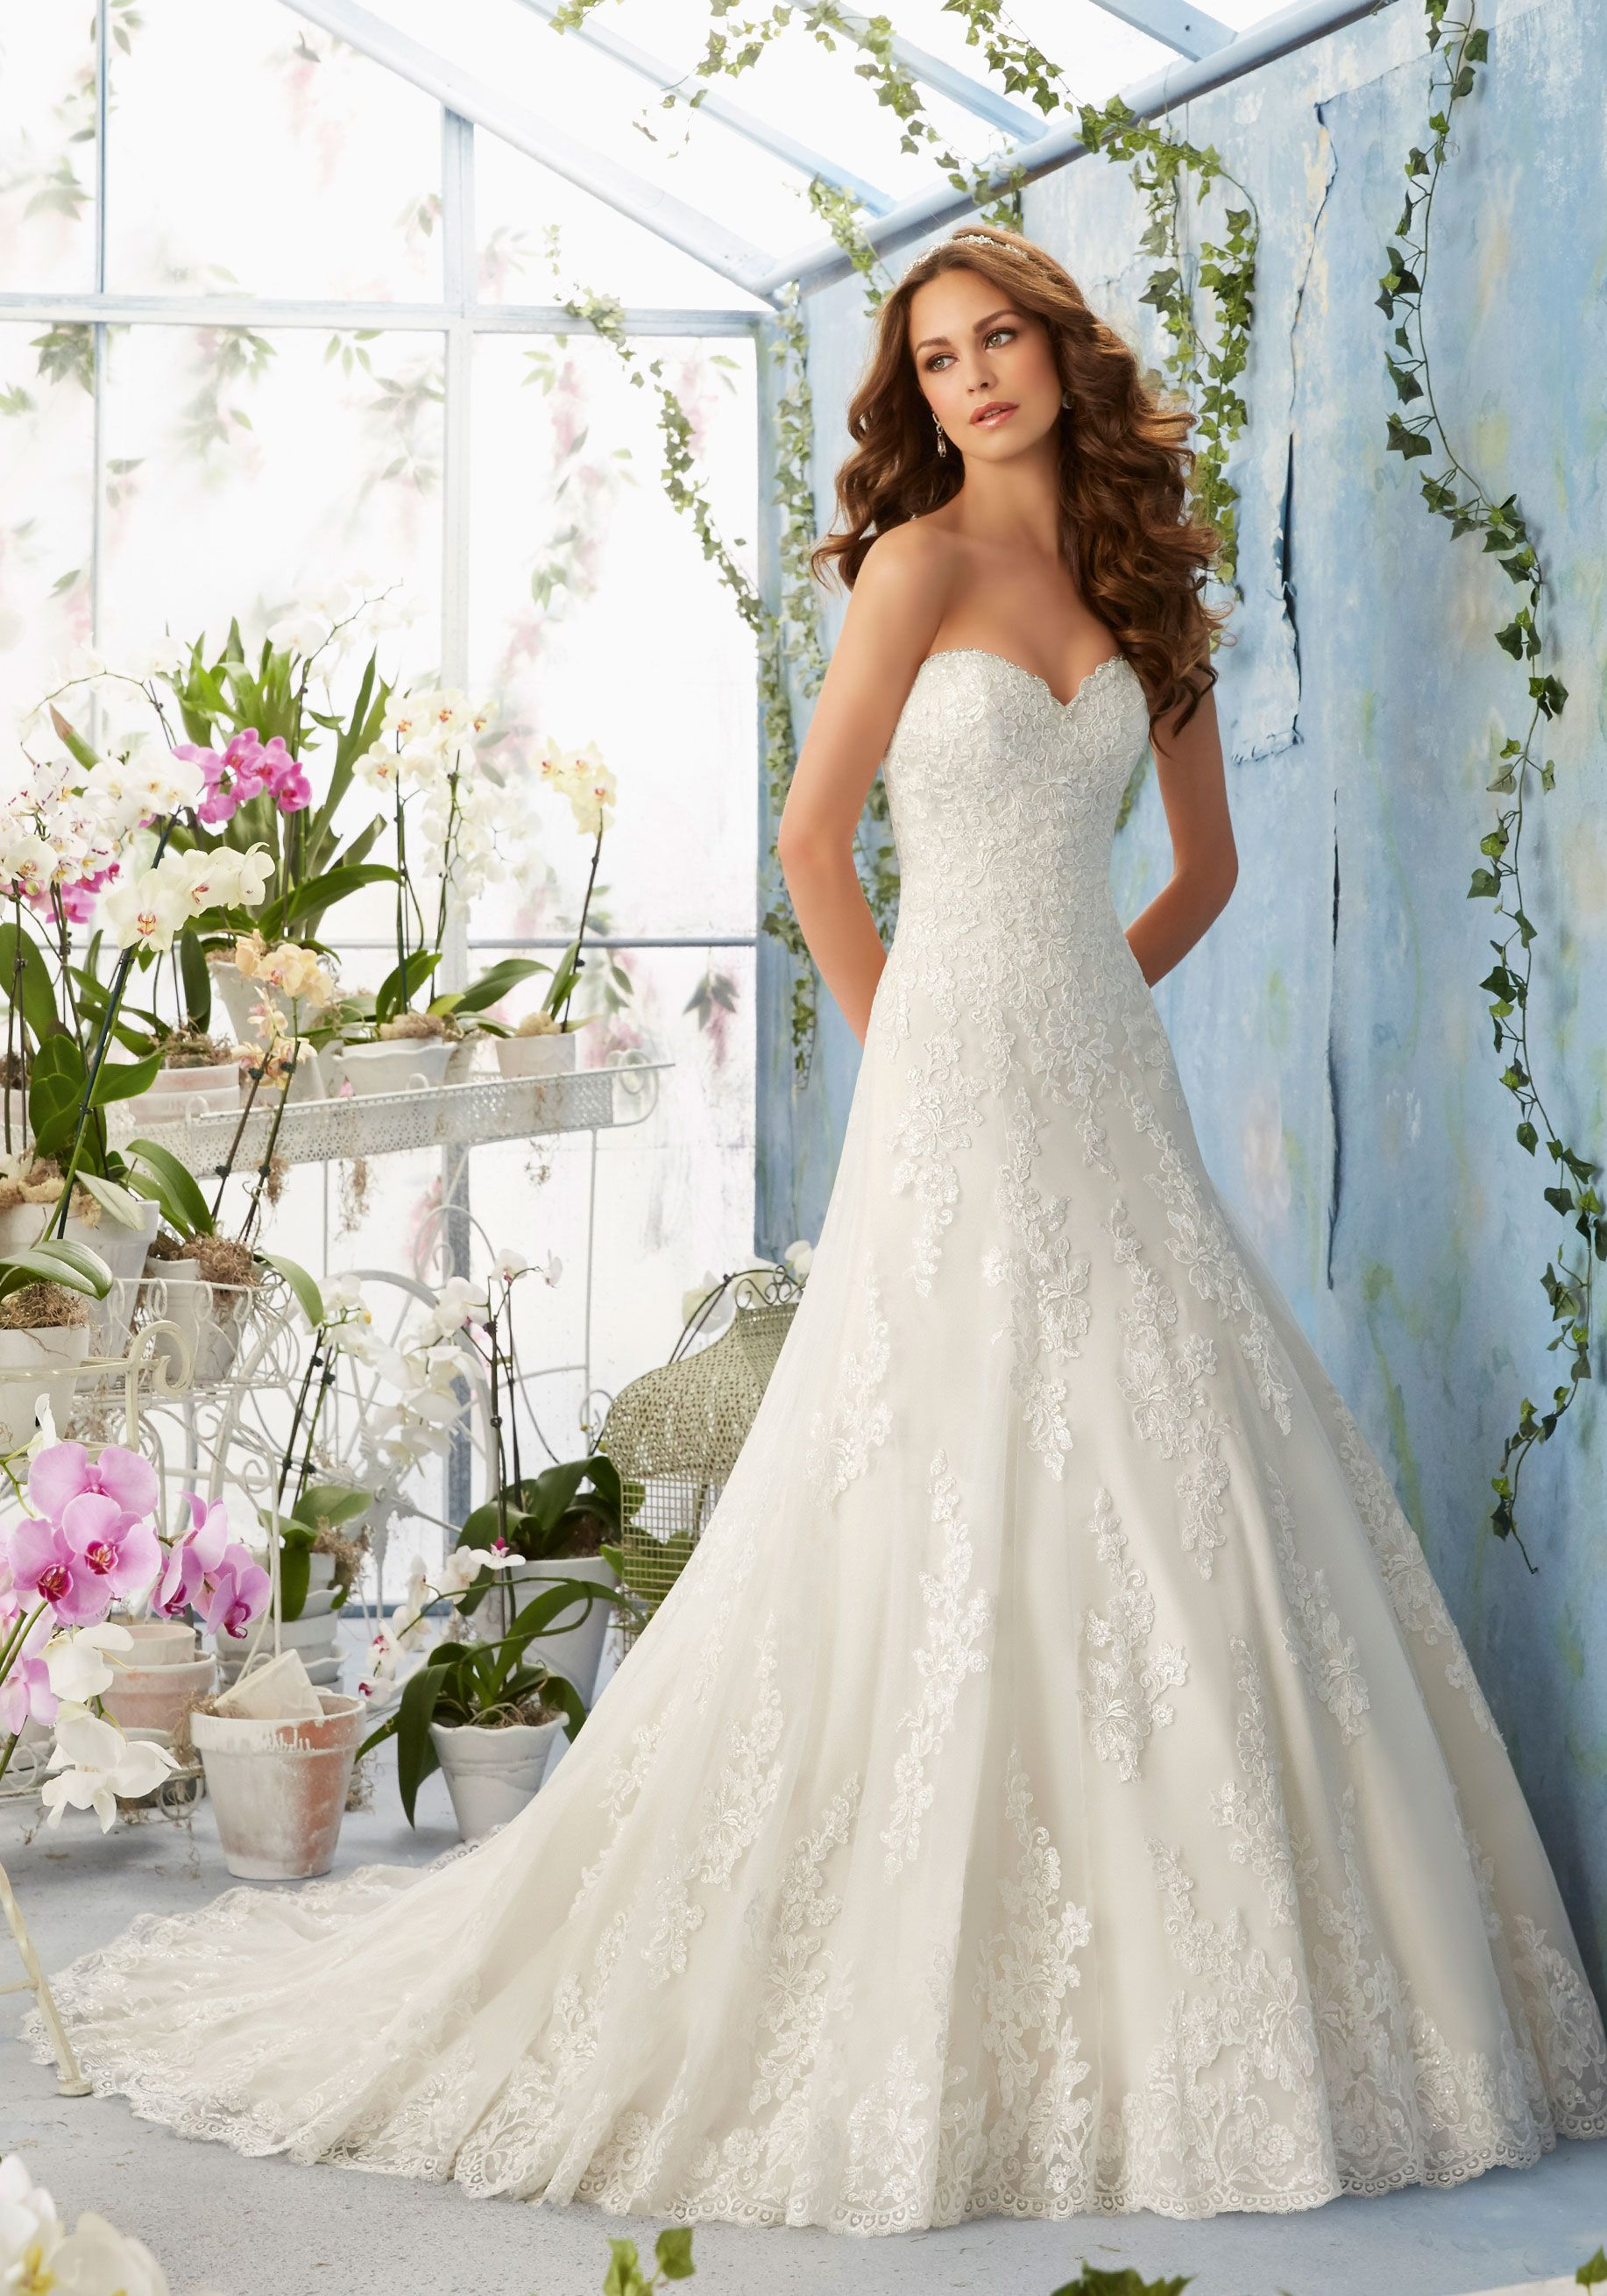 Embroidered Lace Appliques Decorate the Net Dress with Scalloped ...